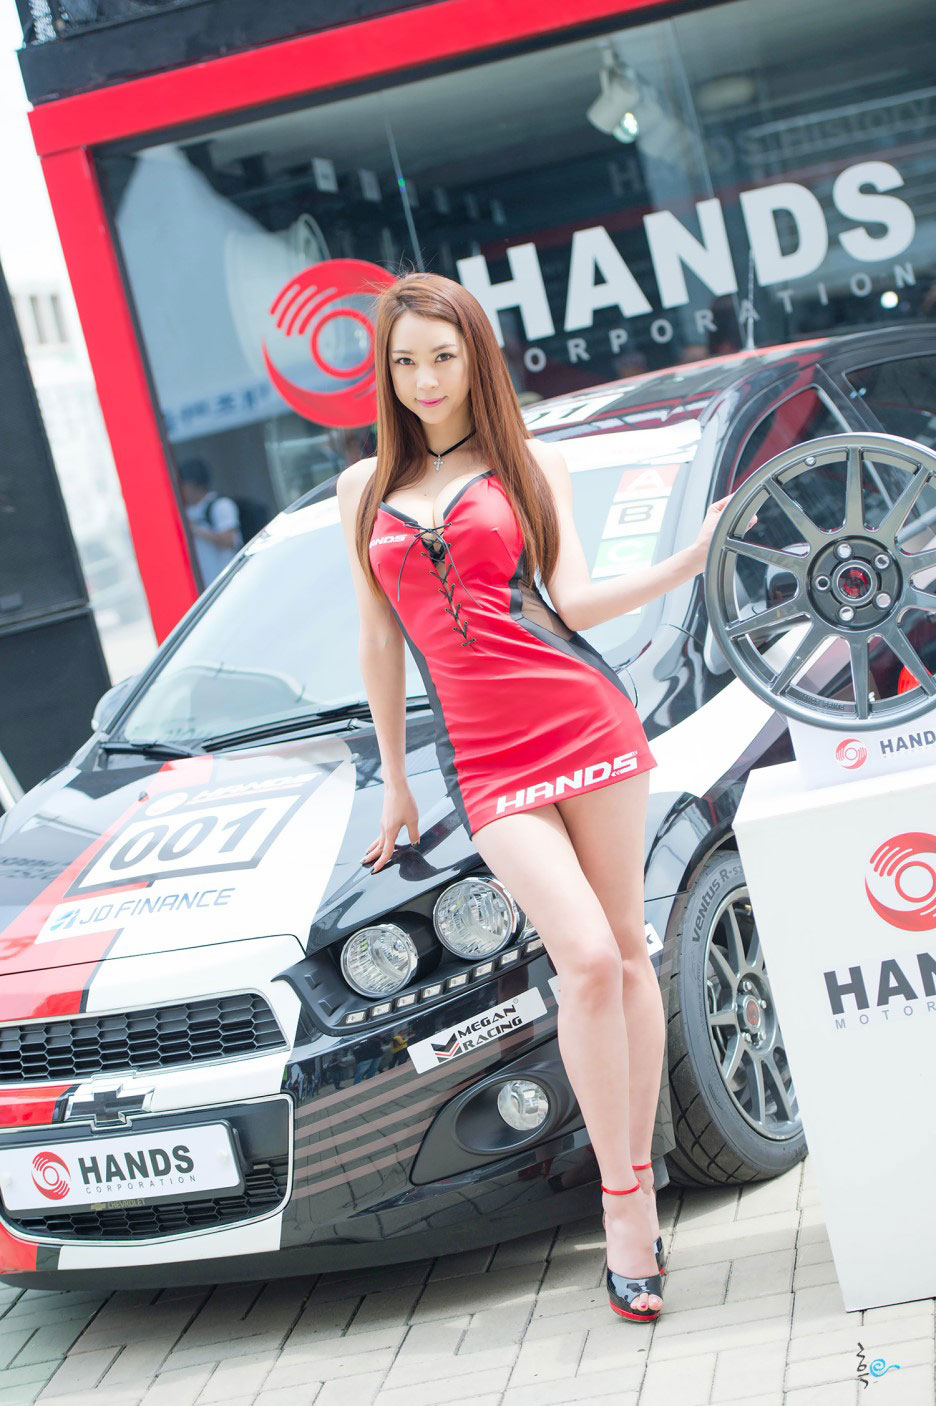 Ju Da Ha Asian Festival of Speed 2015 Hands Motorsport